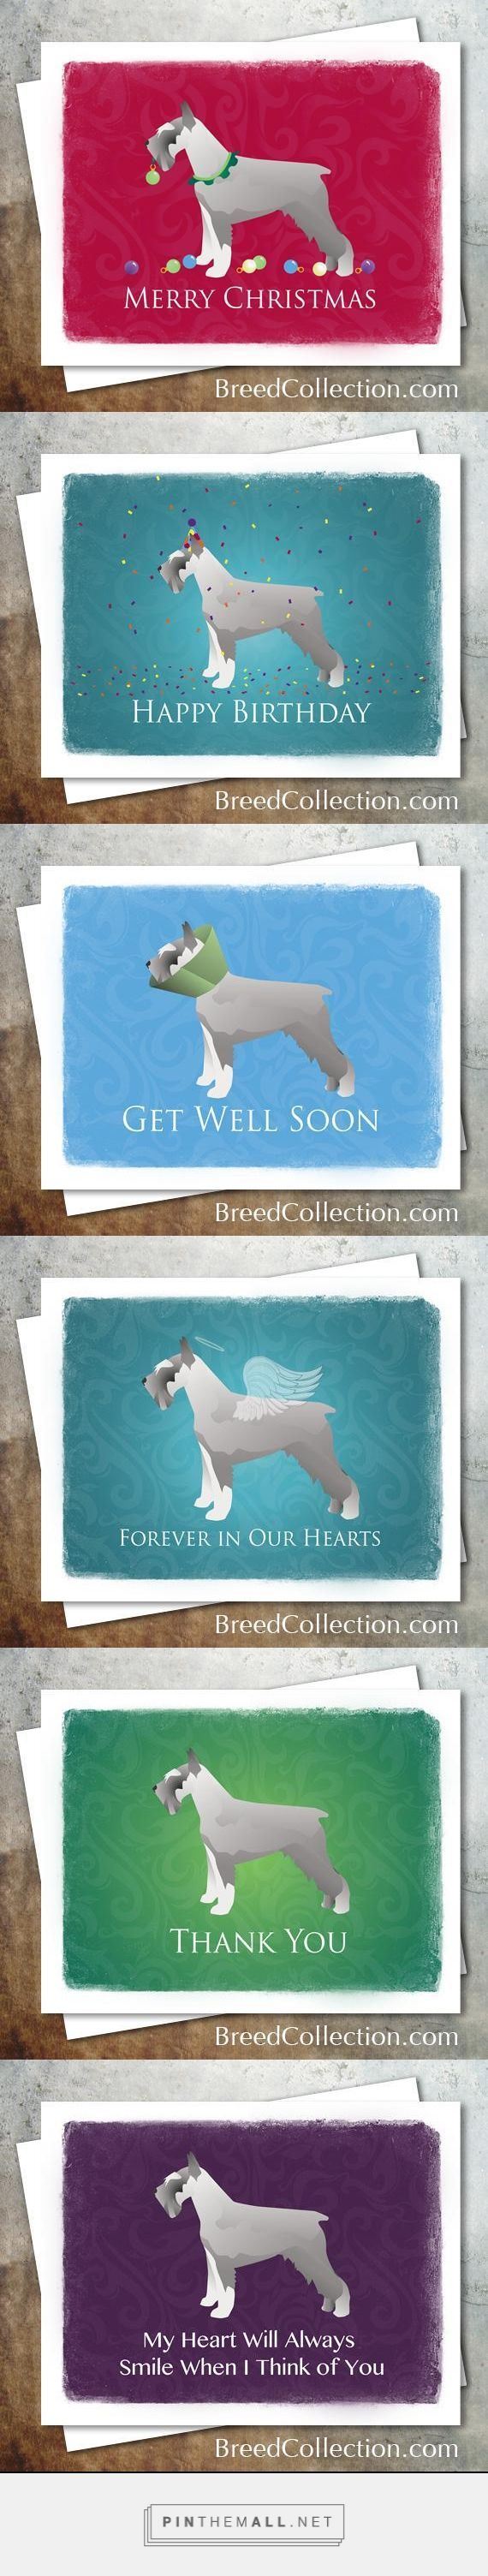 Excellent avery greeting card templates images entry level resume best 25 greeting card store ideas on pinterest greeting card kristyandbryce Gallery